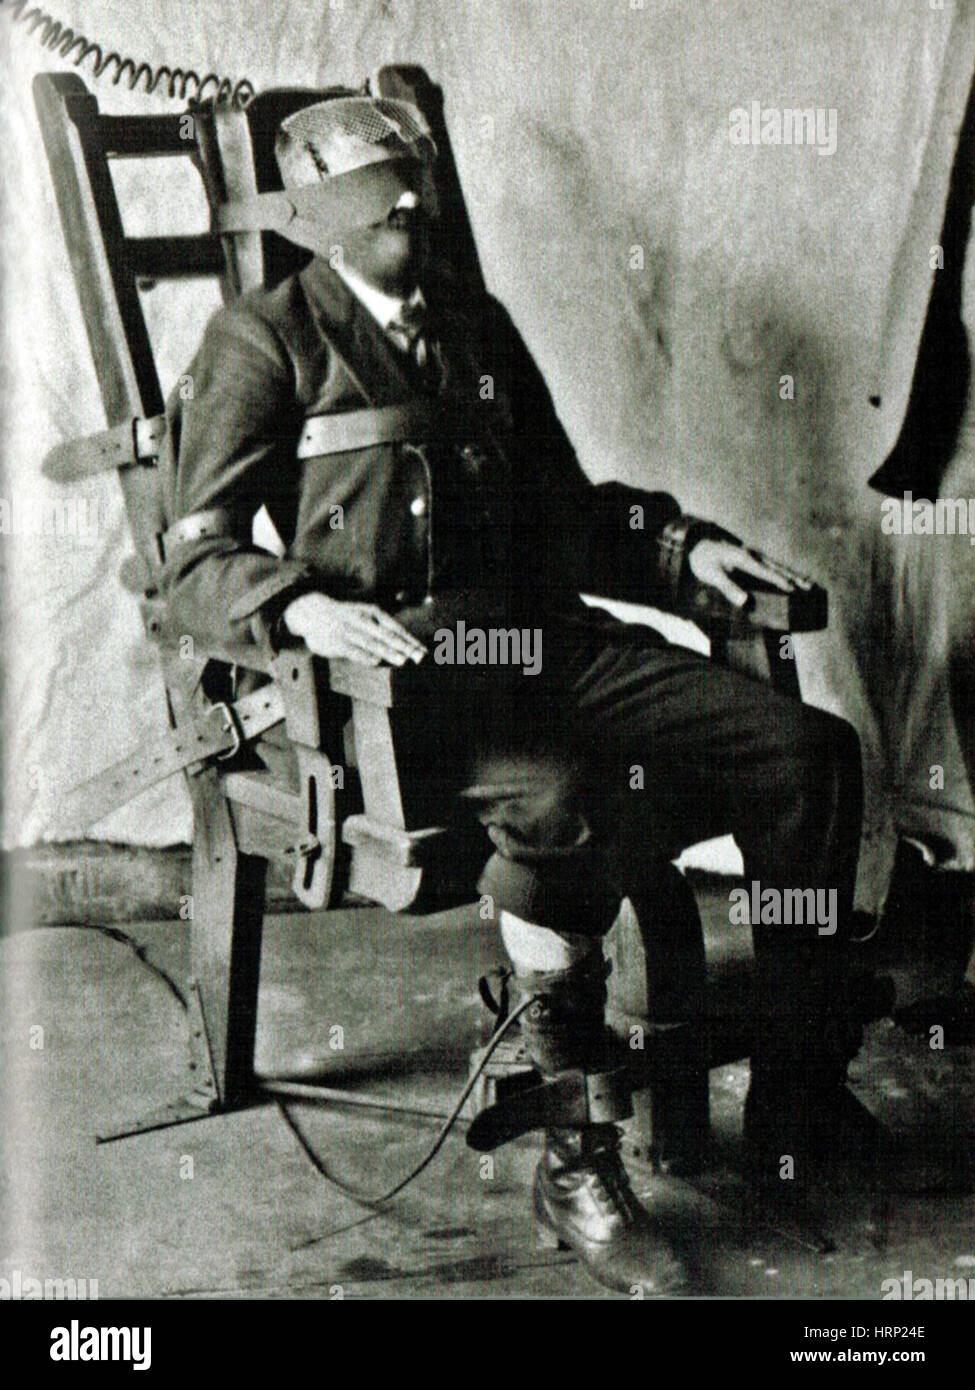 Electric Chair Execution High Resolution Stock Photography And Images Alamy